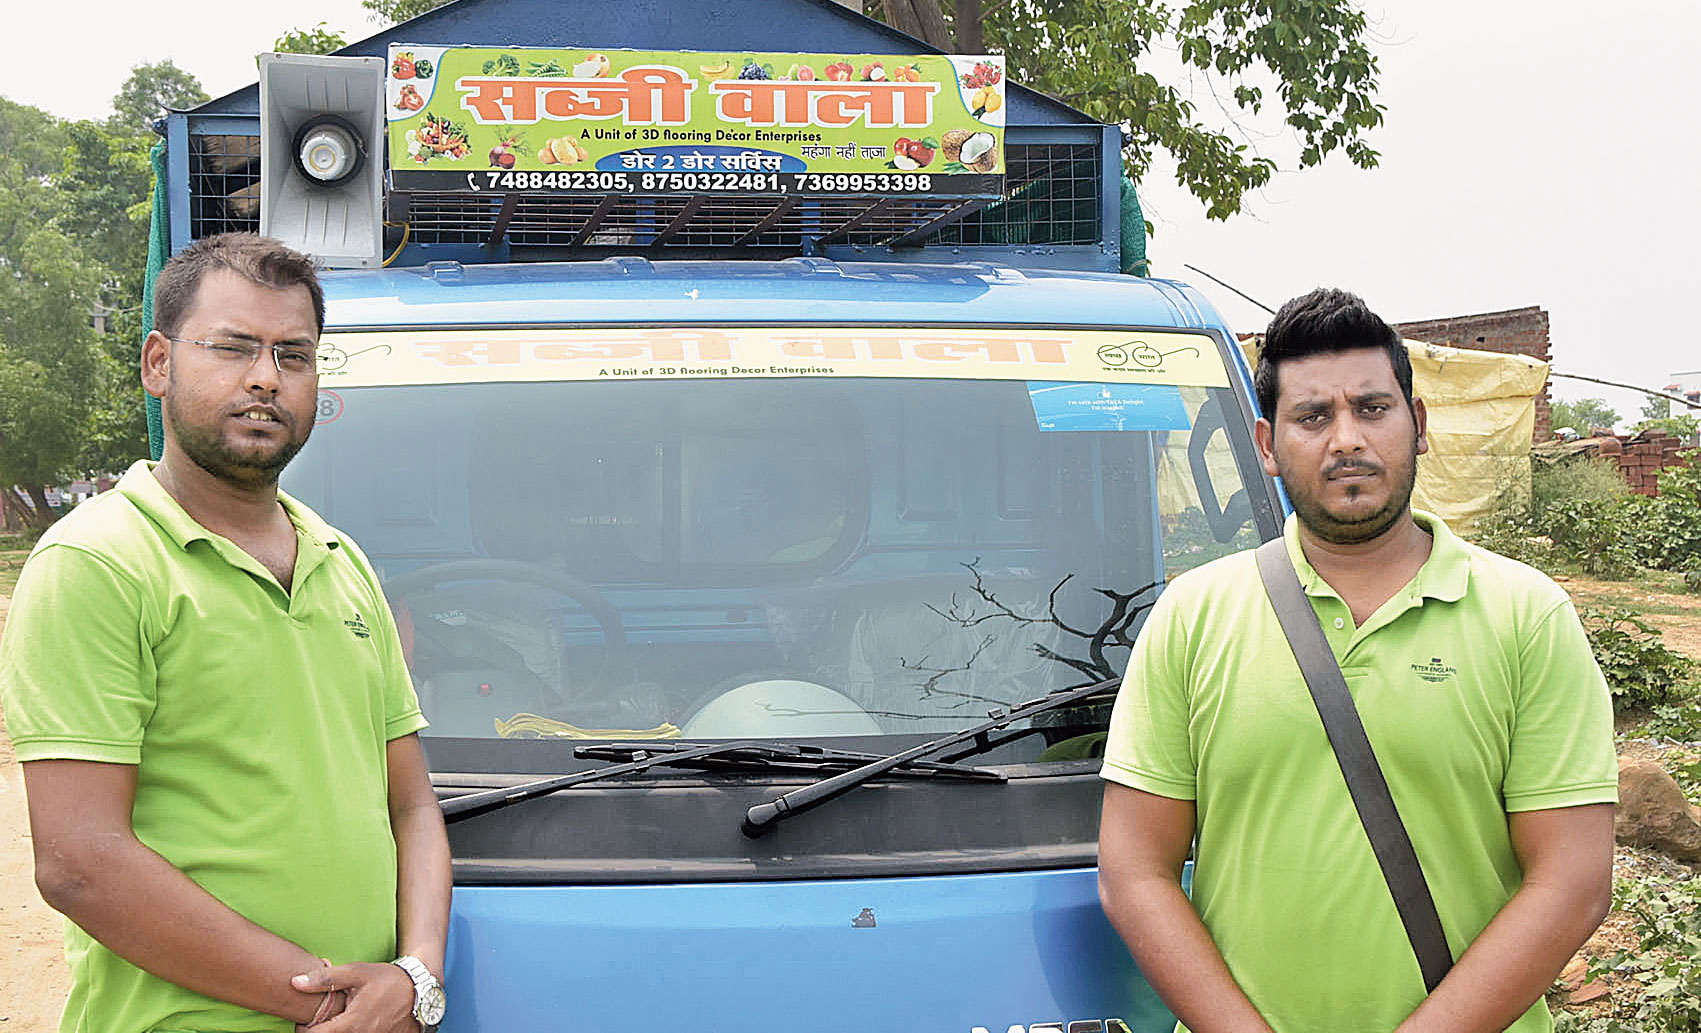 Sudama (right) and Ravi with their mobile vegetable van in Dhanbad on Sunday.